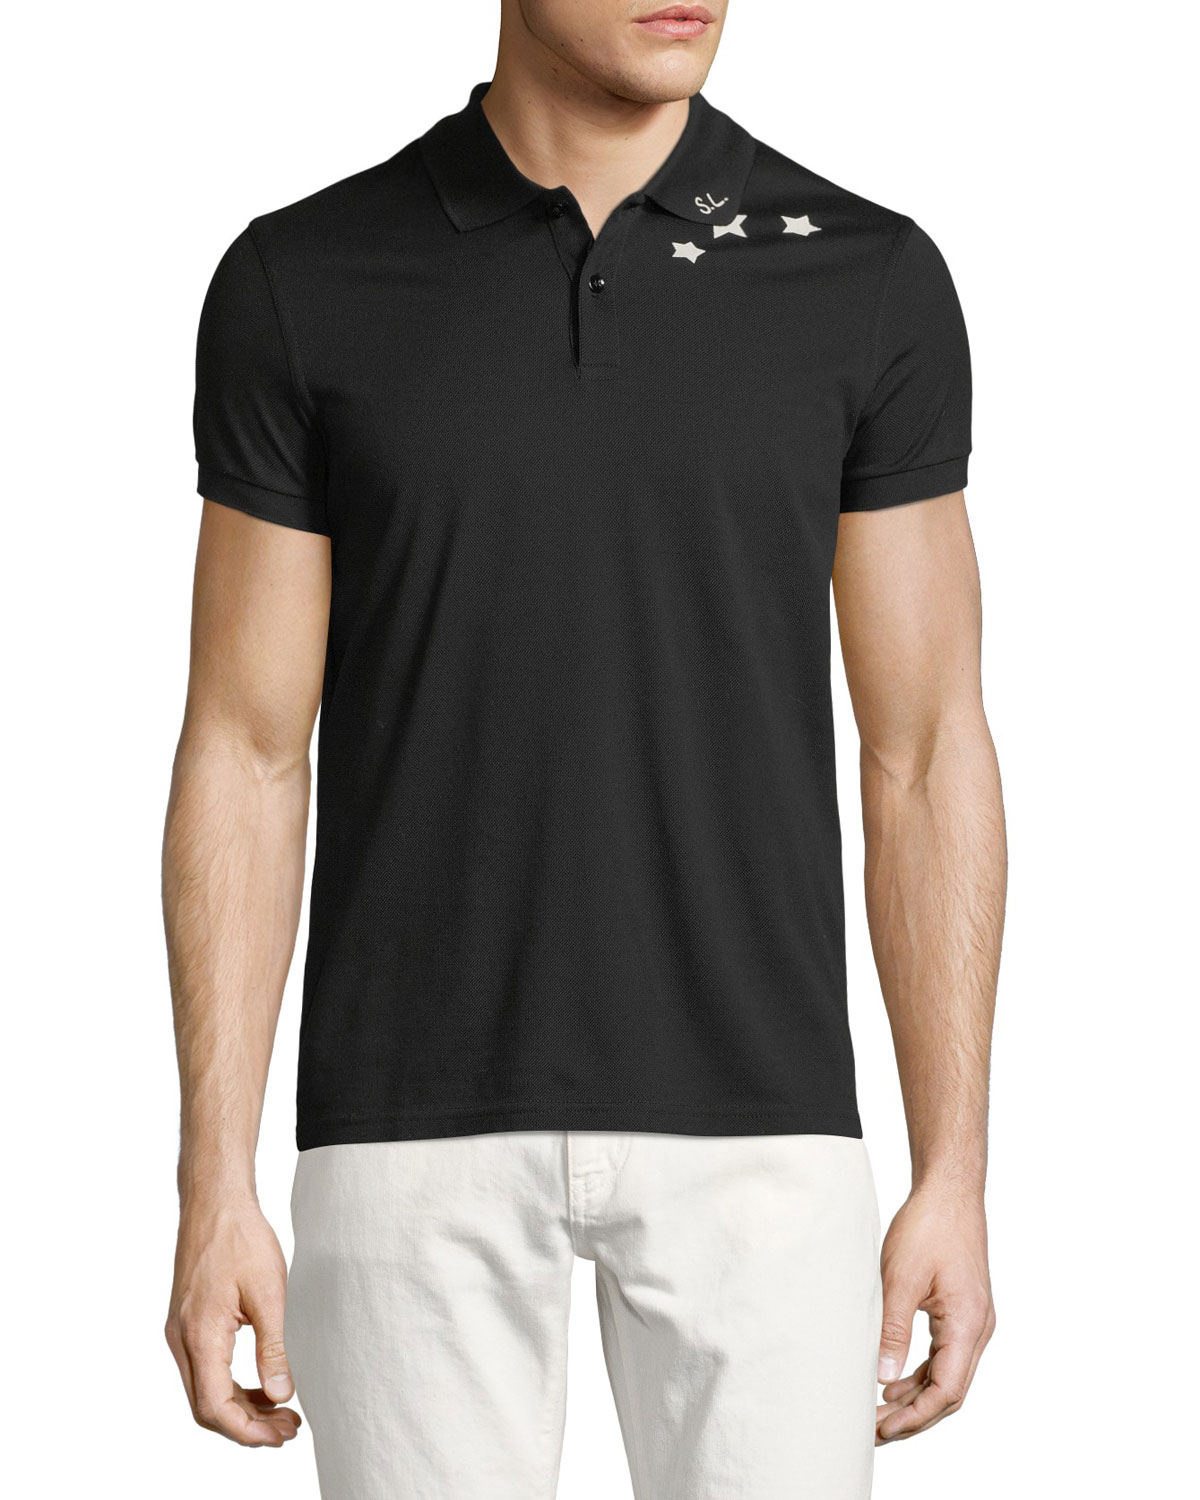 Star-Collar Cotton Pique Polo Shirt